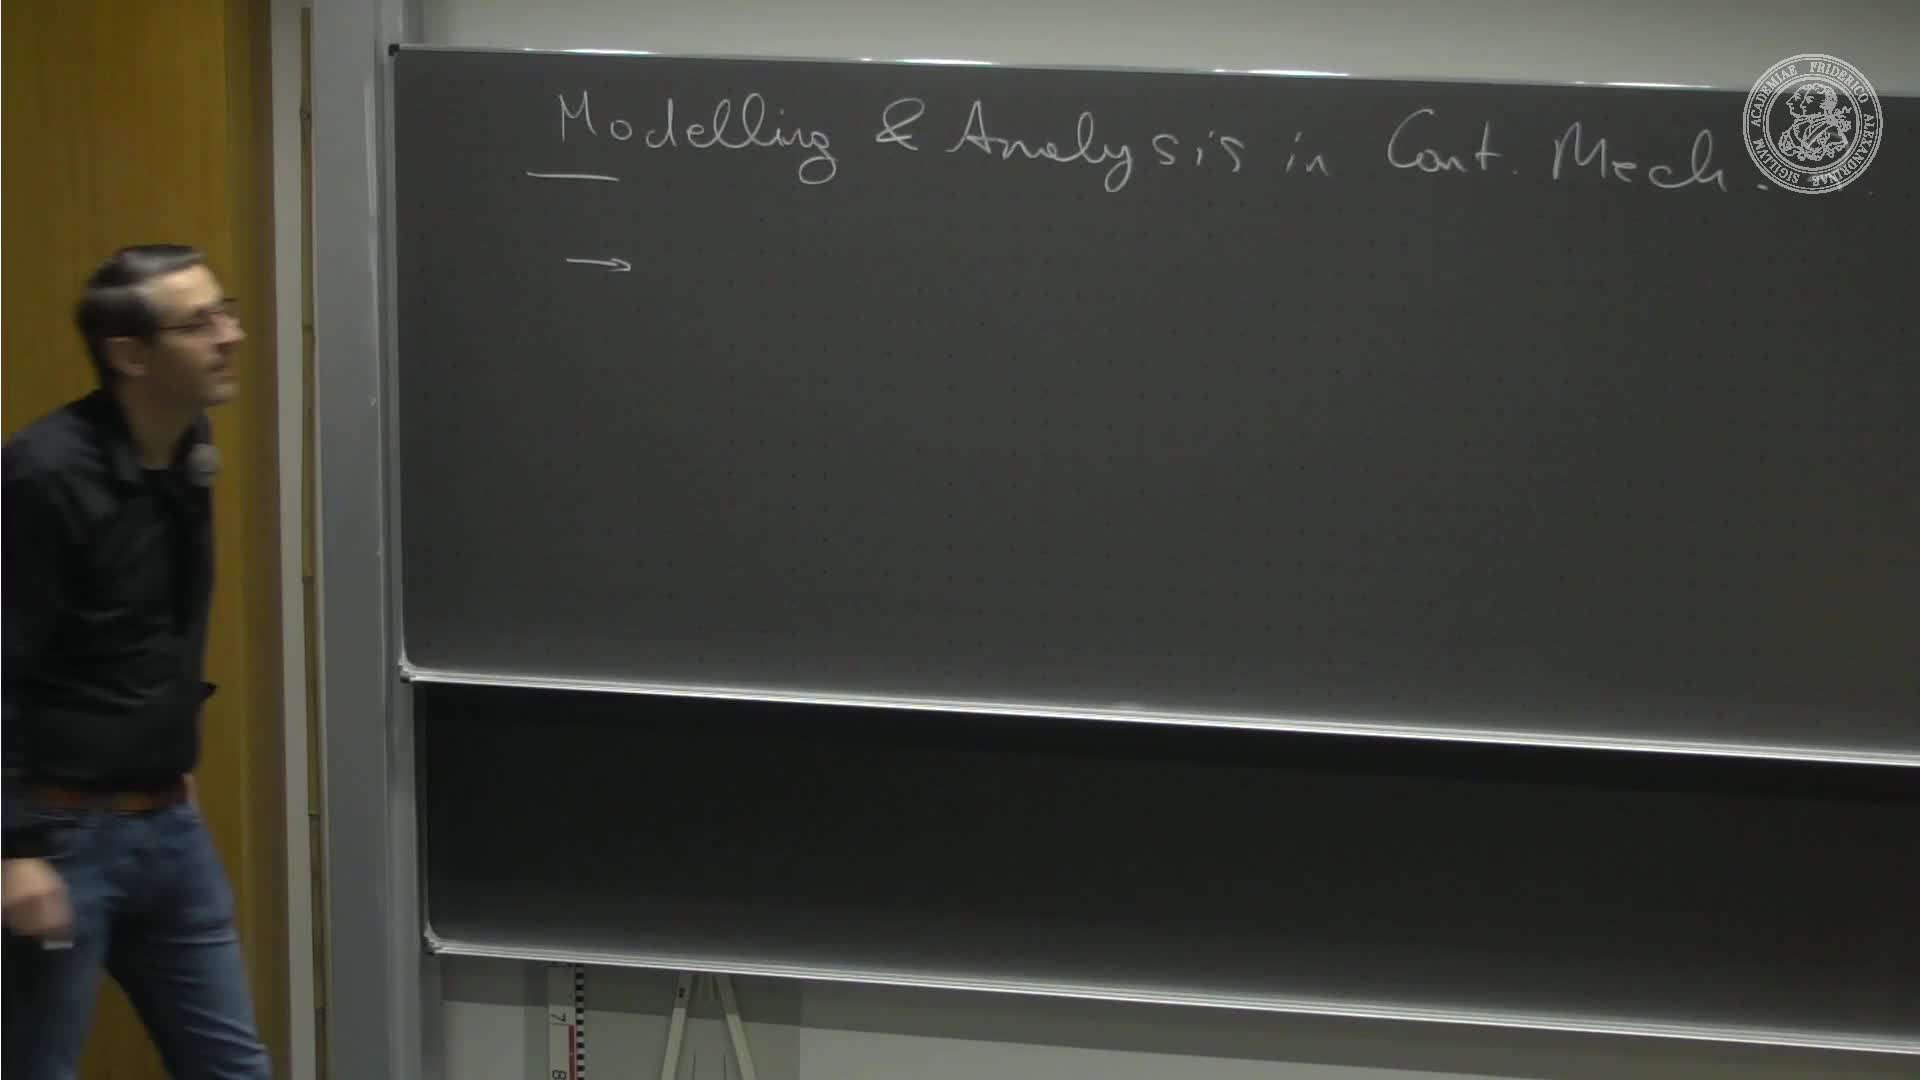 Modelling and Analysis in Continuum Mechanics 2 preview image